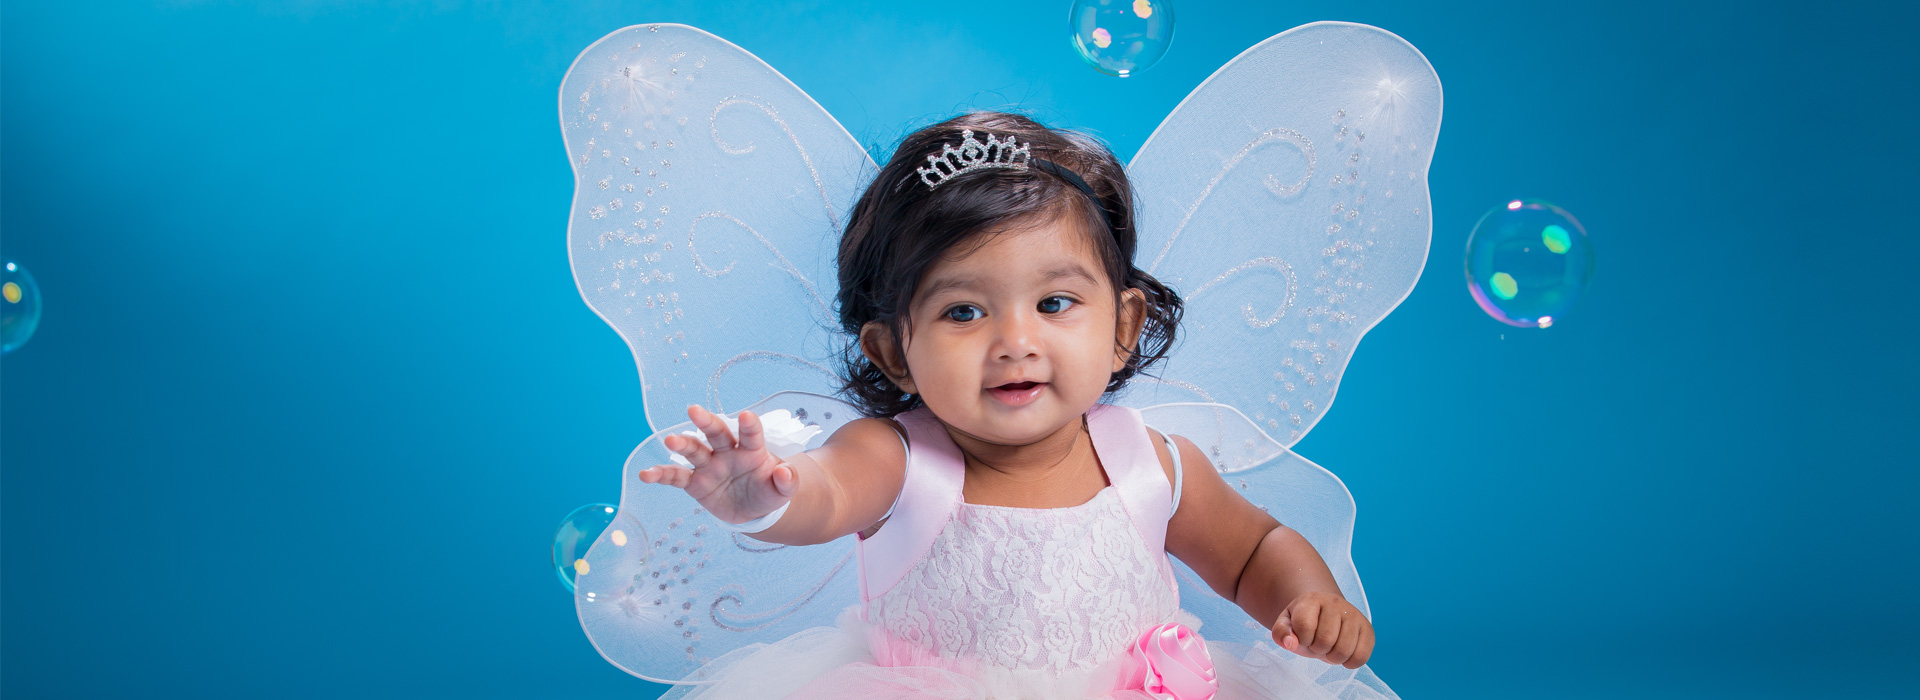 kids portrait photography studio in chennai